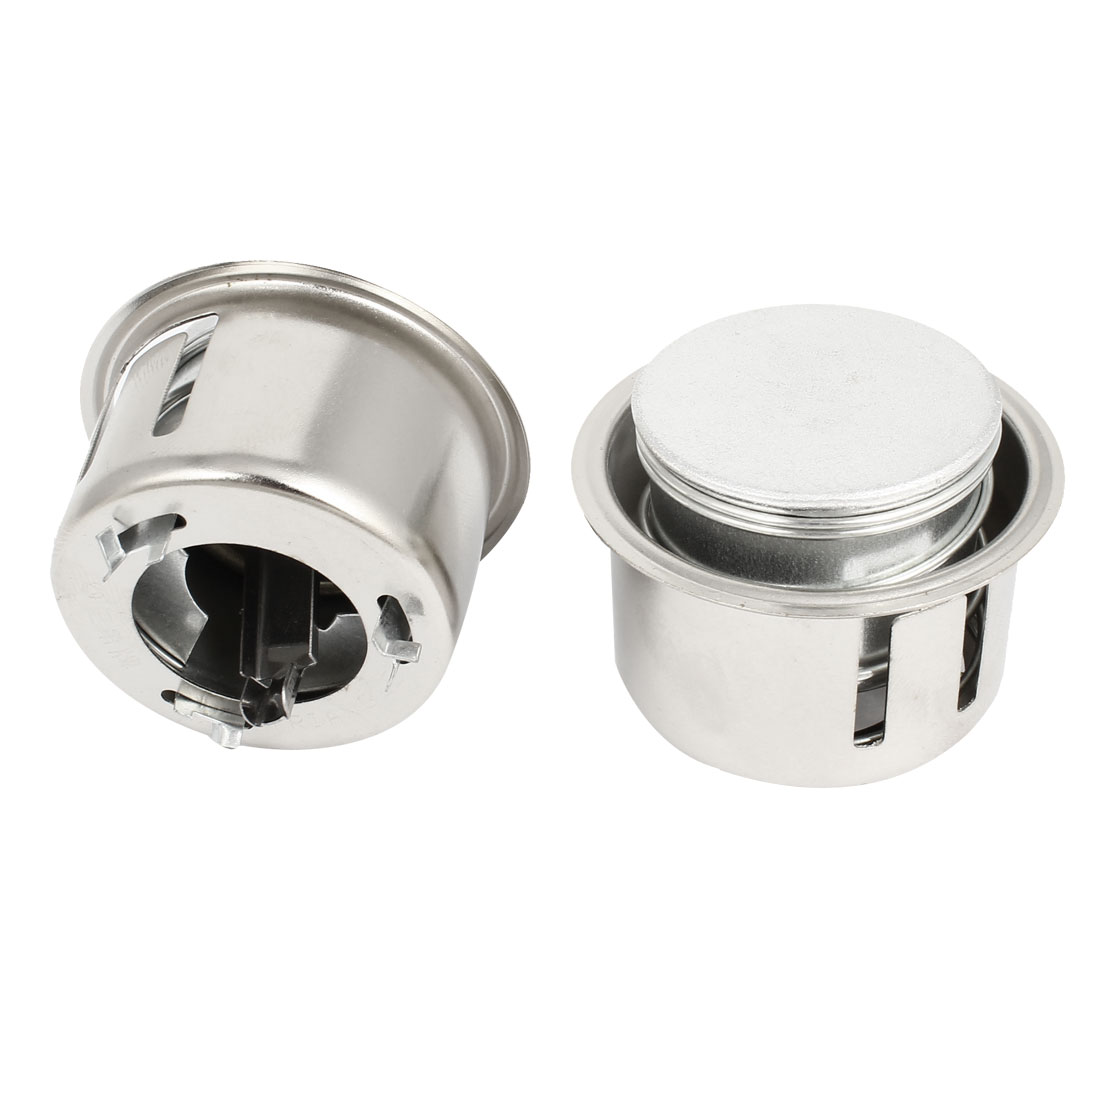 Kitchenware Repairing Stainless Steel Electric Rice Cooker Central Controller Silver Tone 2 Pcs